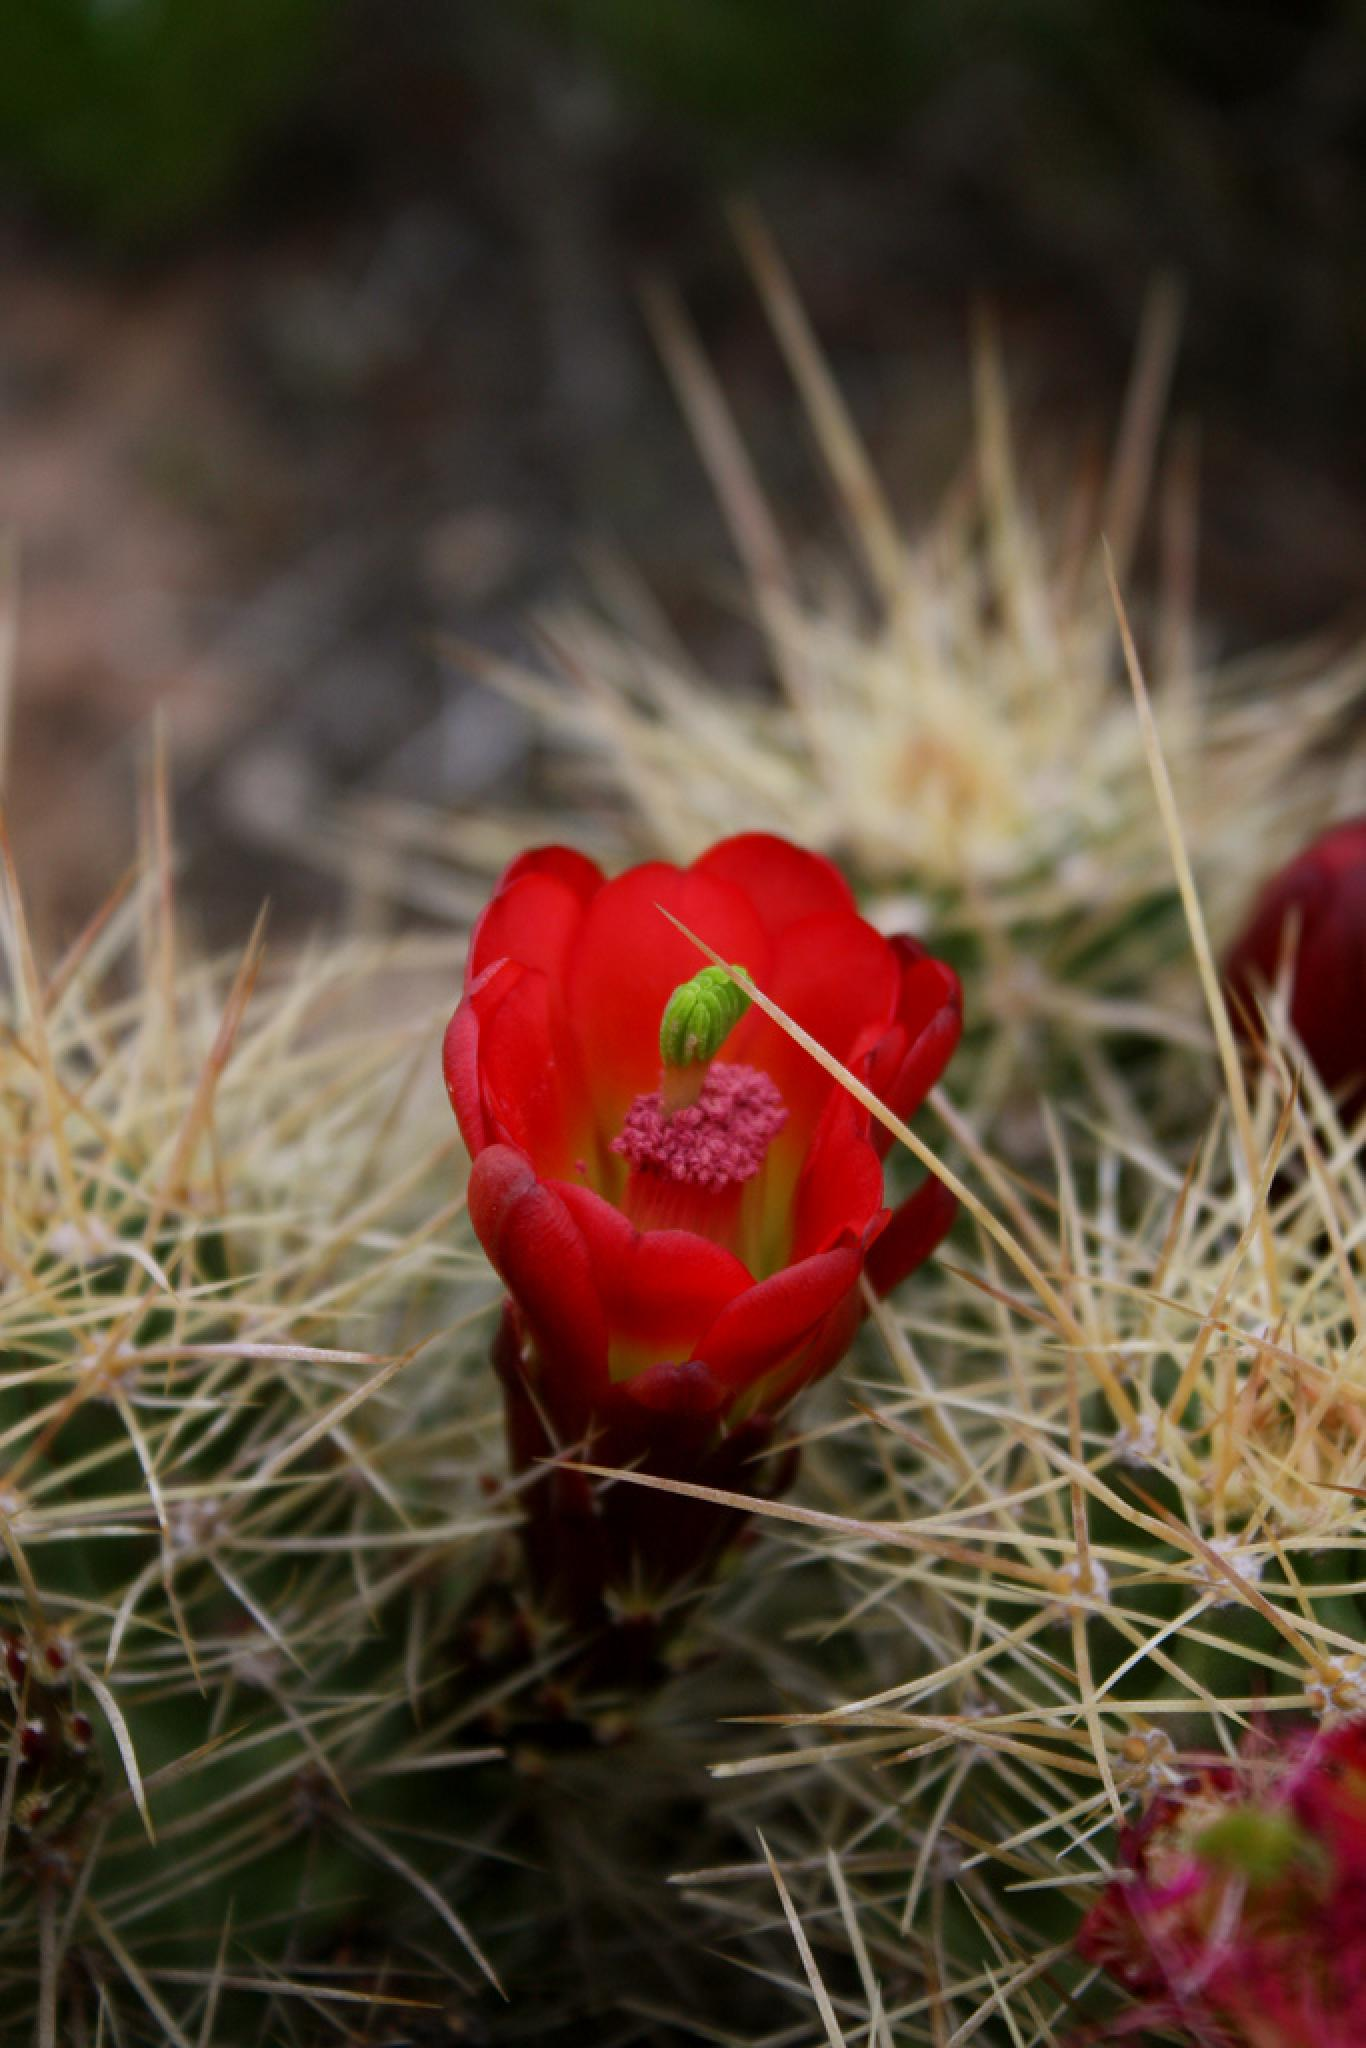 Claret Cup cactus in bloom by Wags